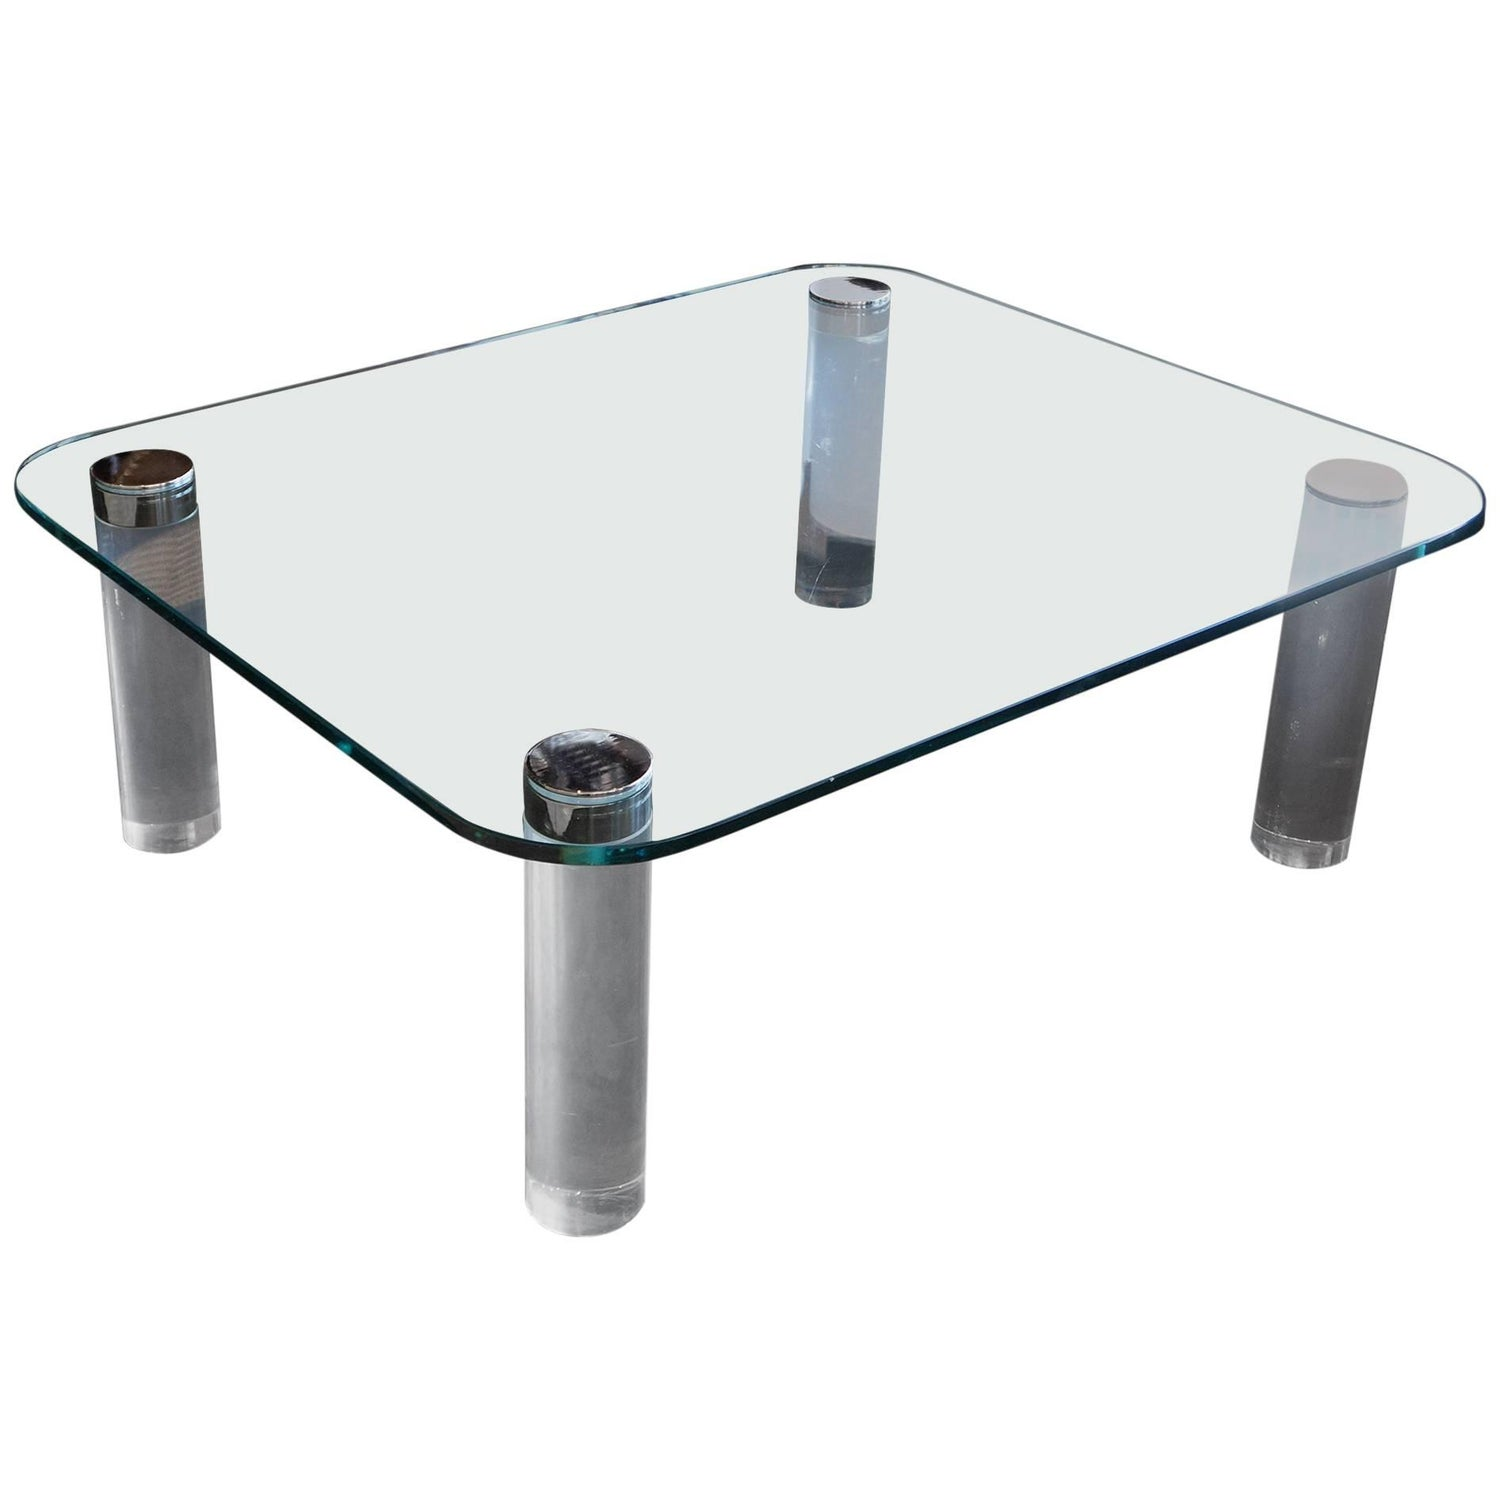 Chrome and Glass Coffee Table For Sale at 1stdibs